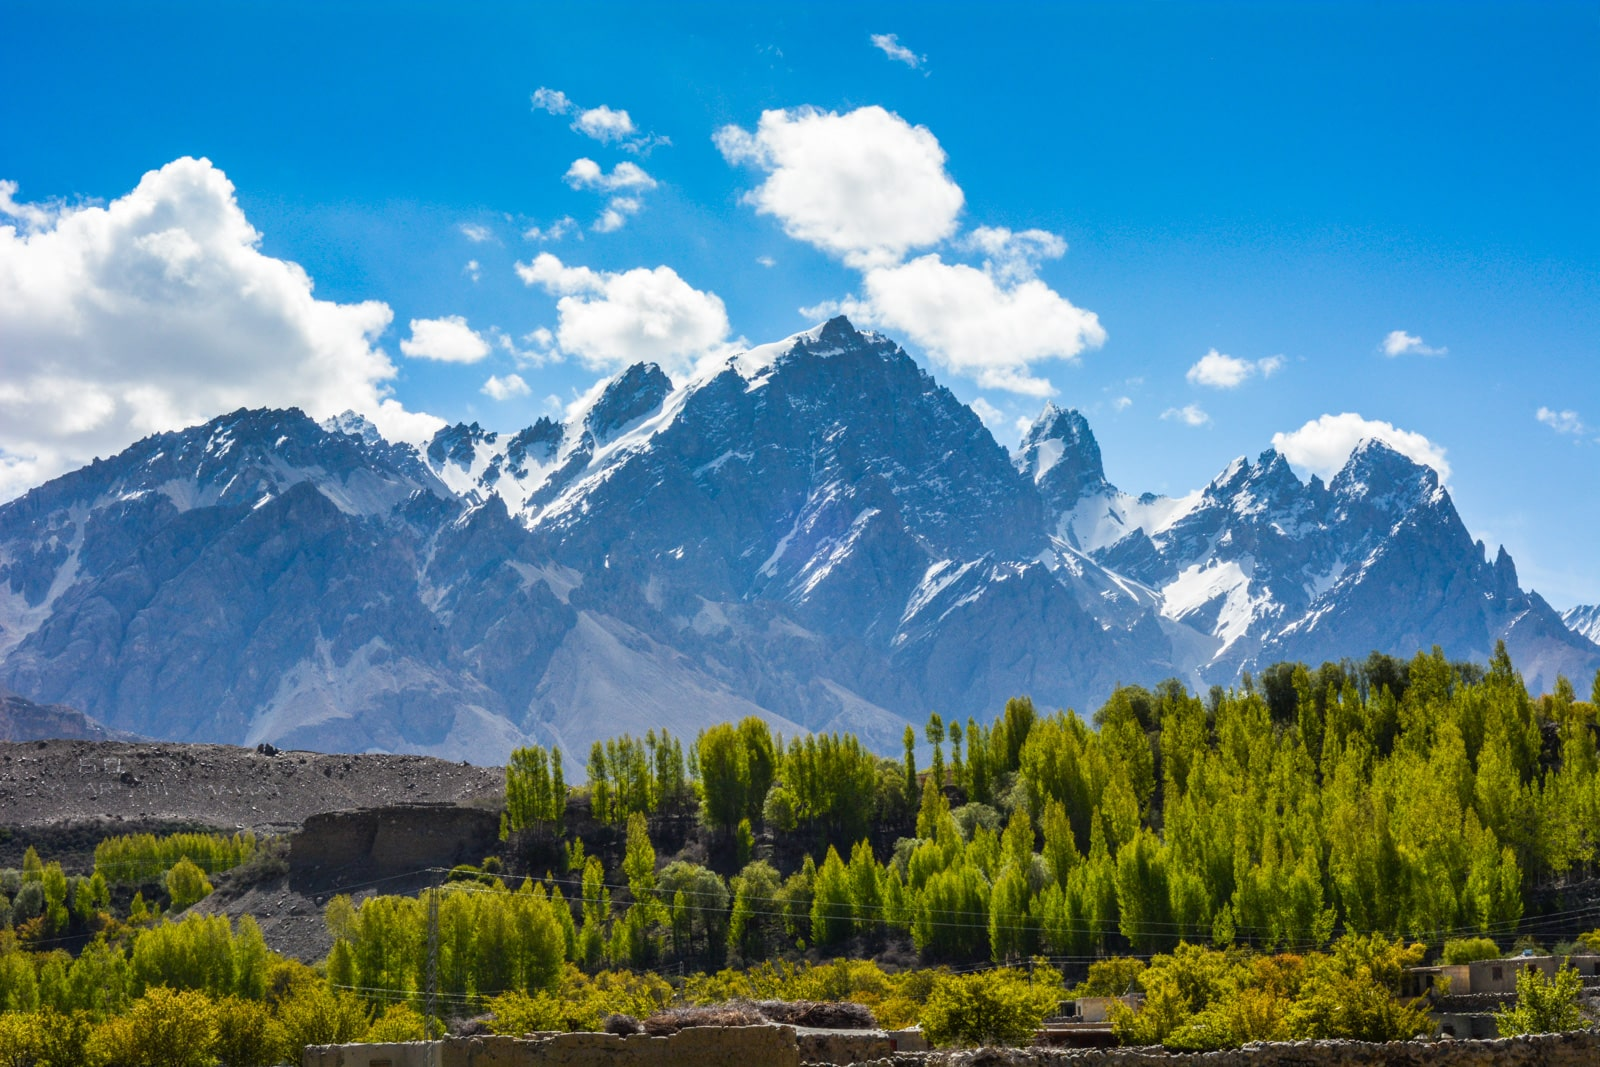 Mountains in Shimshal Valley, Pakistan